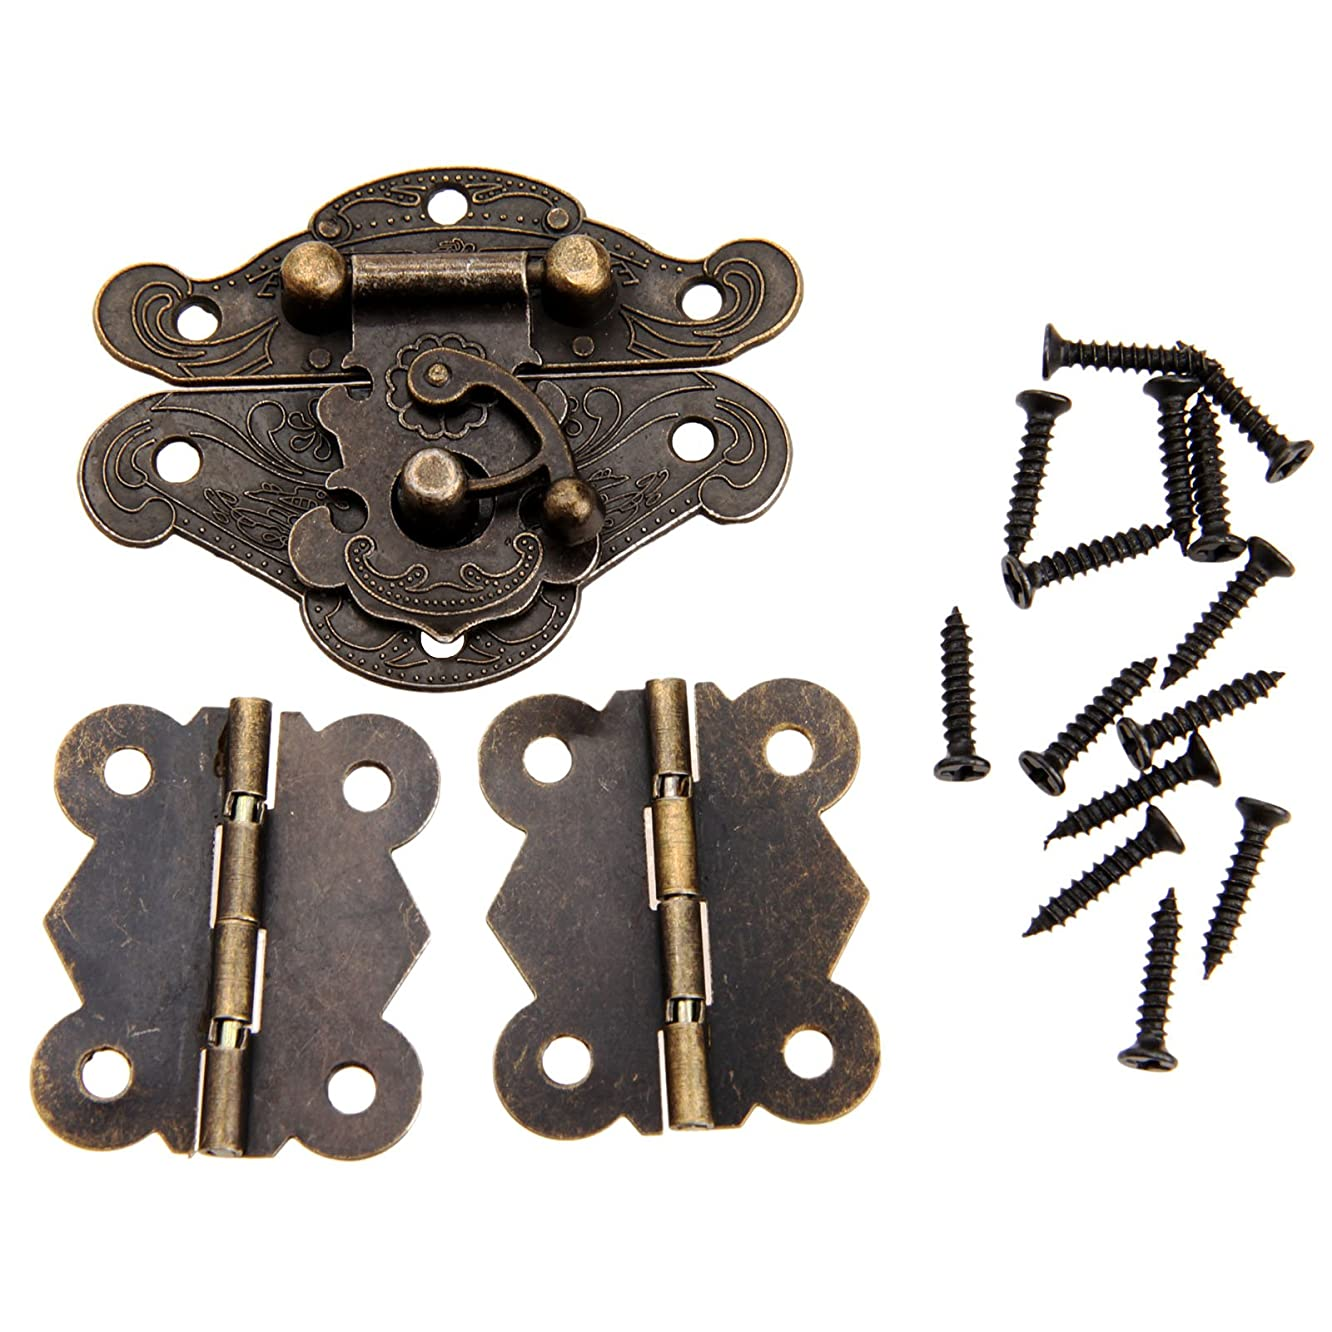 1Pc Antique Bronze Jewelry Wooden Box Case Toggle Hasp Latch +2Pcs Cabinet Hinges Furniture Accessories Iron Vintage Hardware 1-